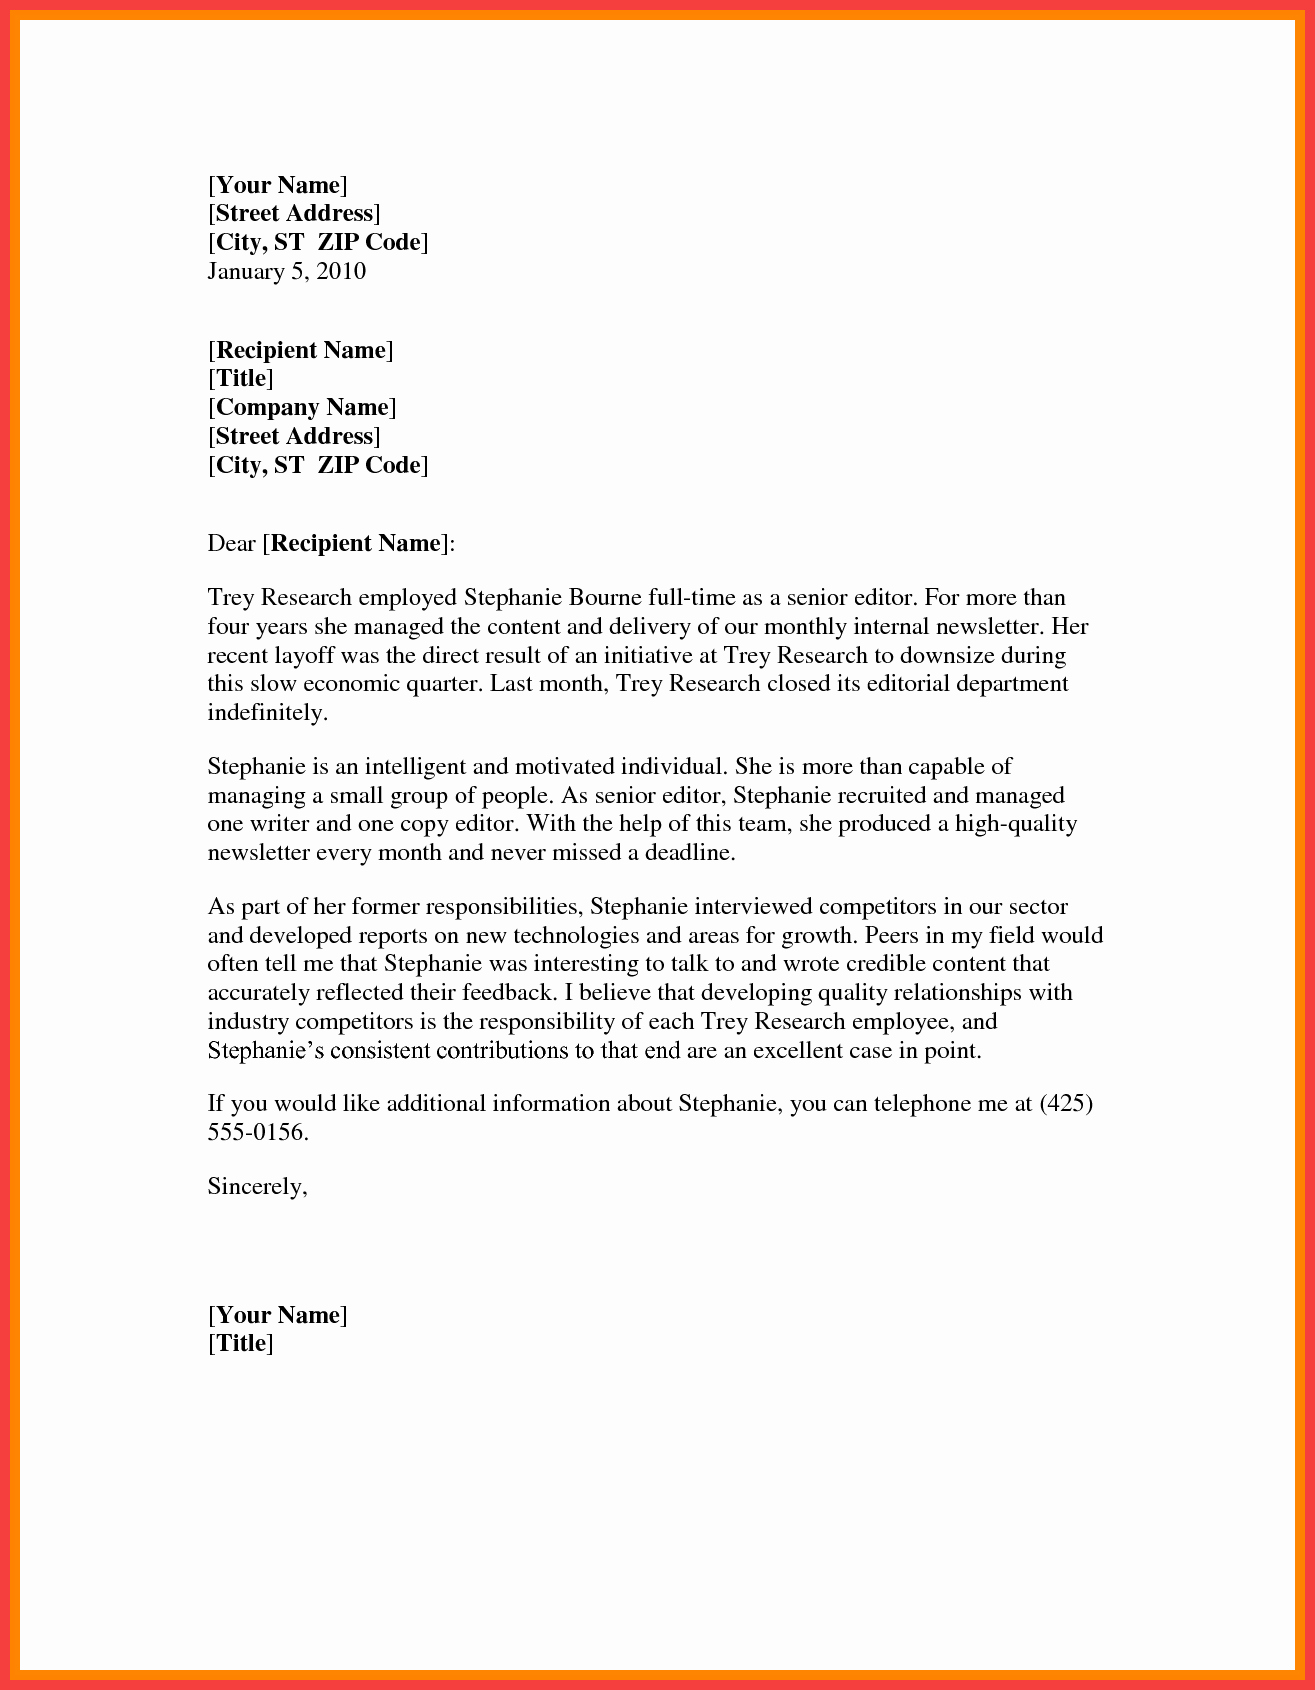 Formal Letter Template Microsoft Word Awesome Word formal Letter Template